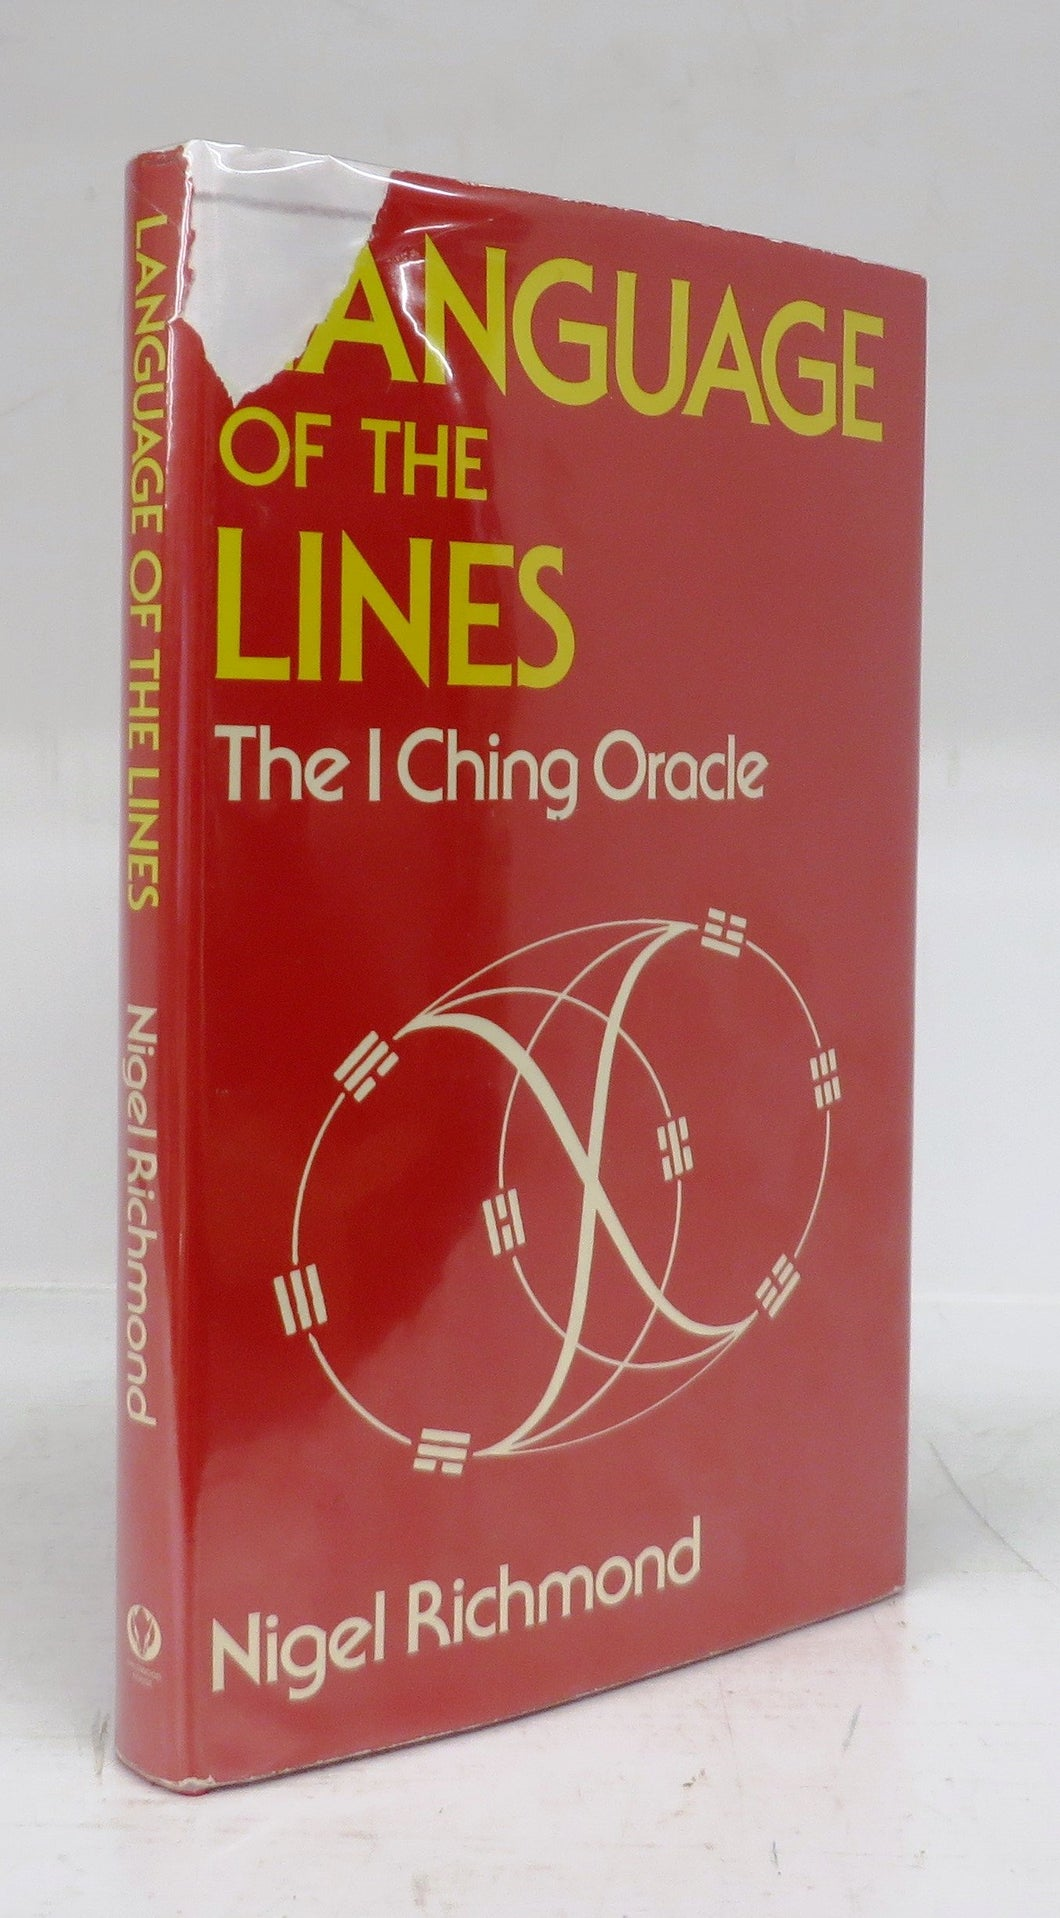 Language of the Lines: The I Ching  Oracle